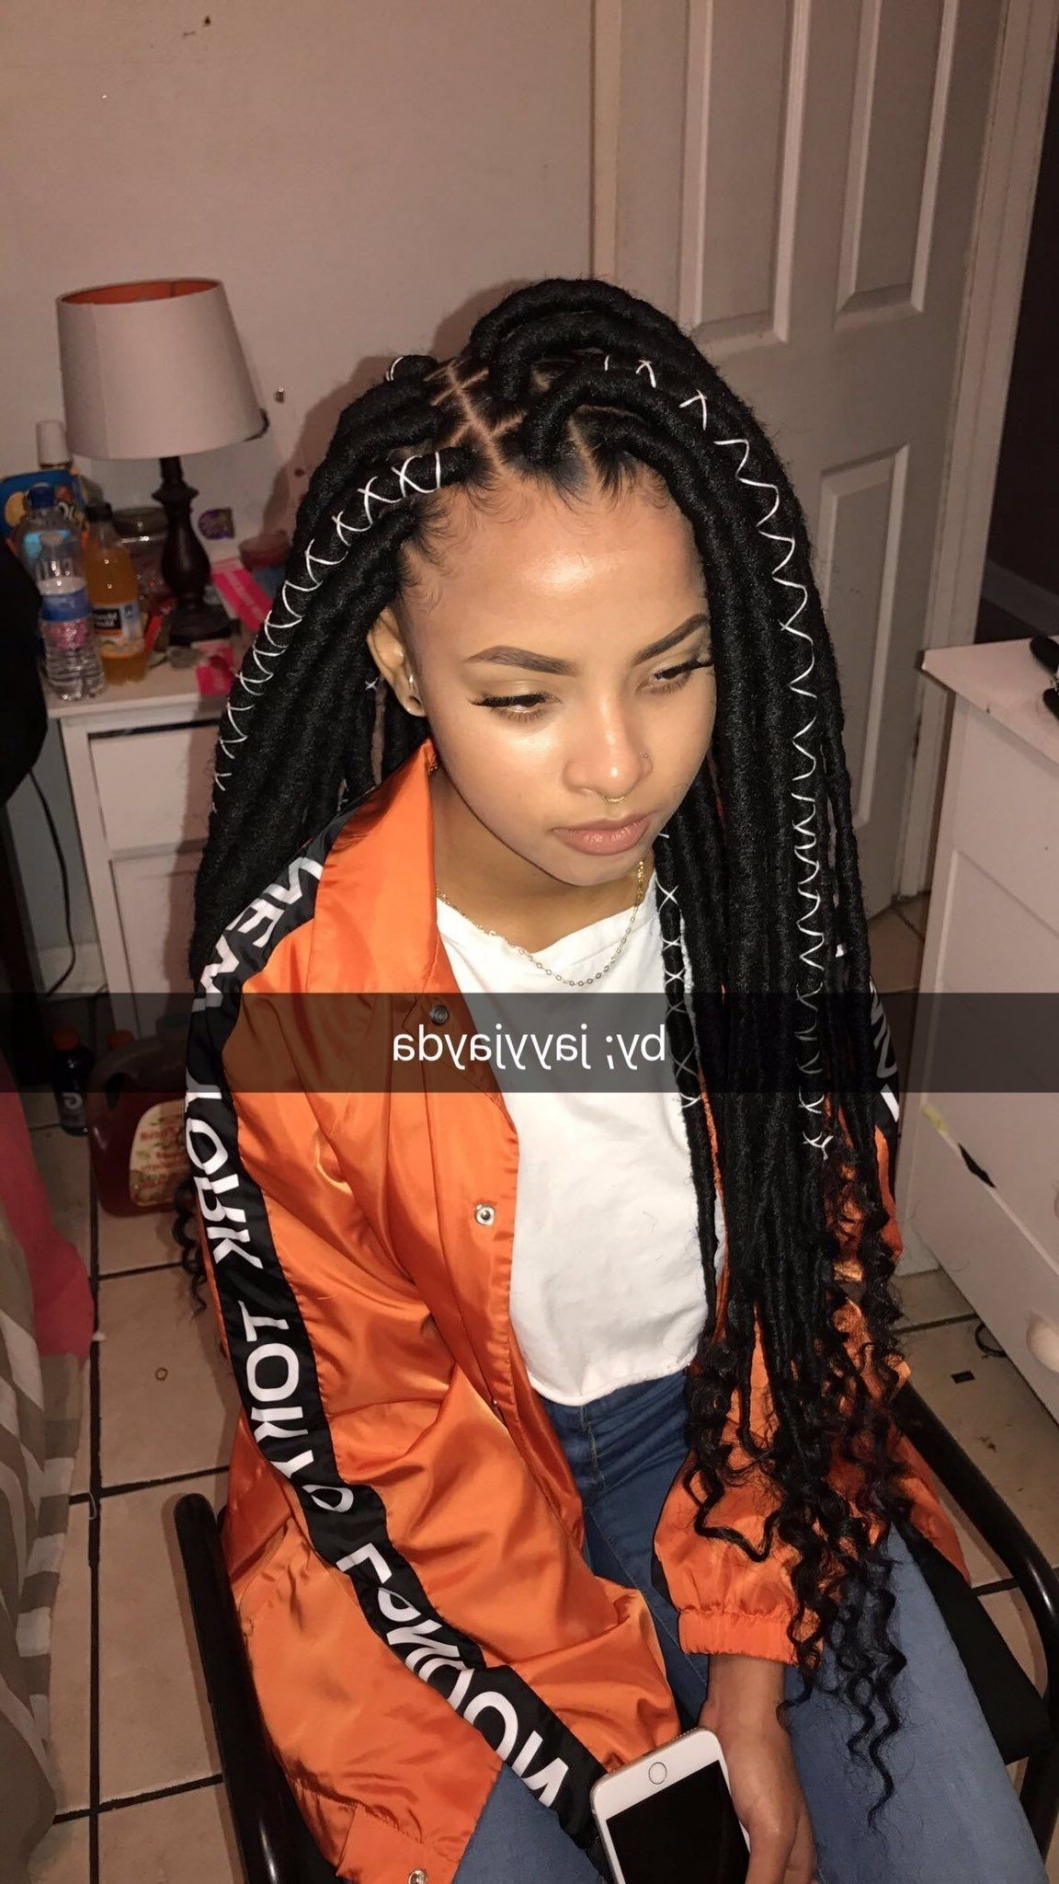 Unique Braided Hairstyles Black Hair 2016 New Feed In Braids Natural Pertaining To Well Known Feed In Braids Hairstyles (View 15 of 15)